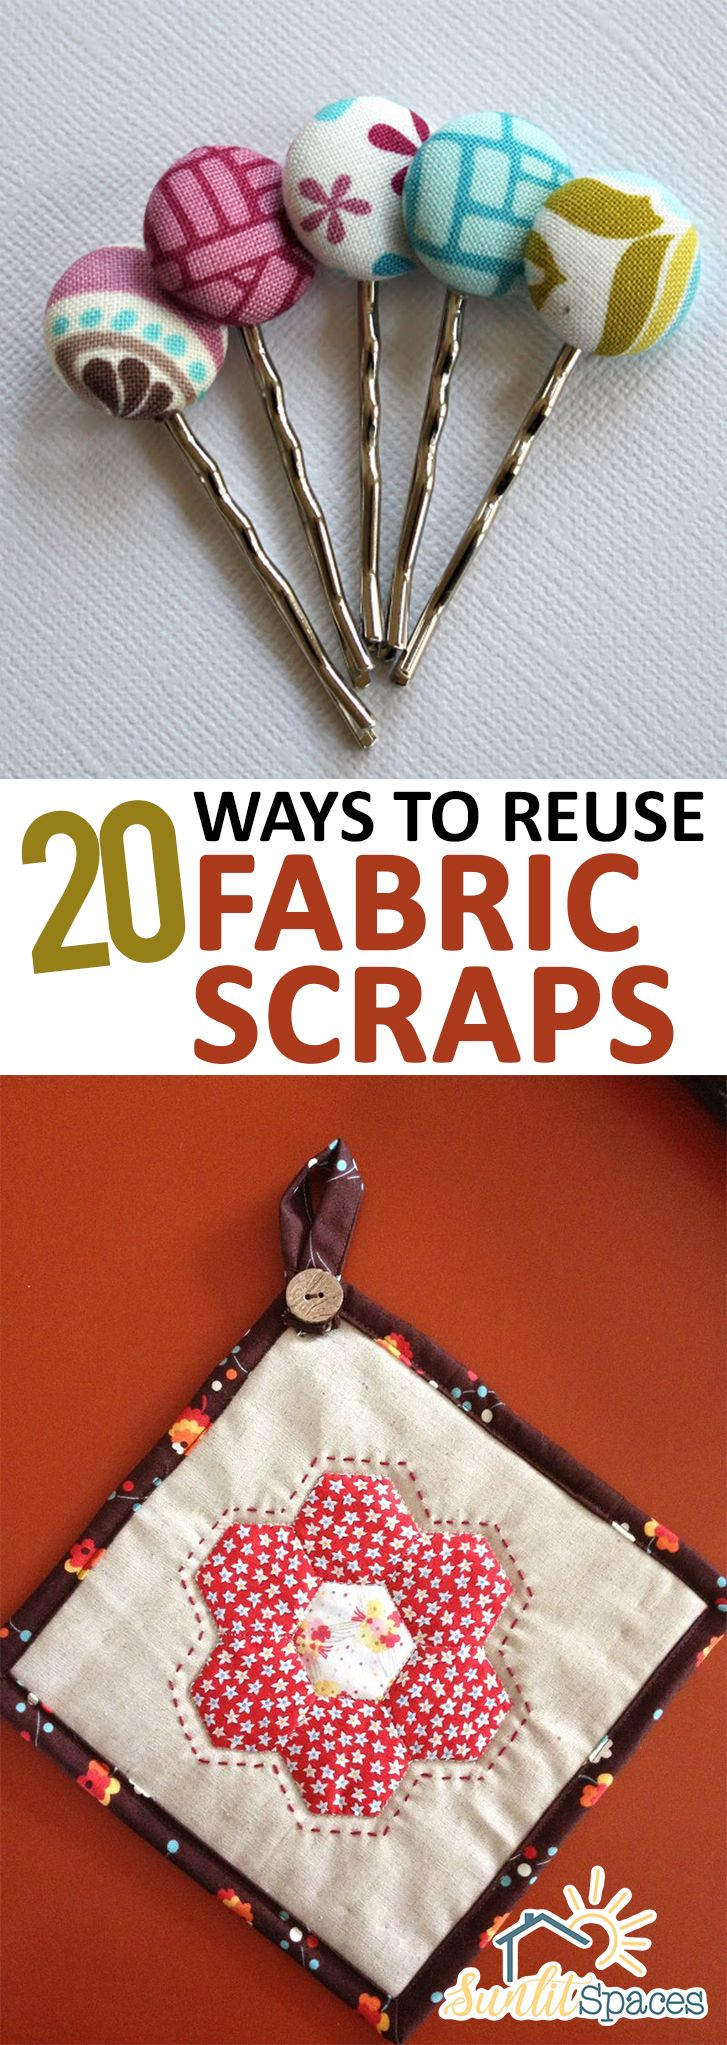 How to Reuse Fabric Scraps, Things to Do With Fabric Scraps, Fabric Scrap Crafts, Easy Sewing Projects, Simple Sewing Projects, Quick Sewing Projects, Repurpose Fabric Scraps, Popular Pin.